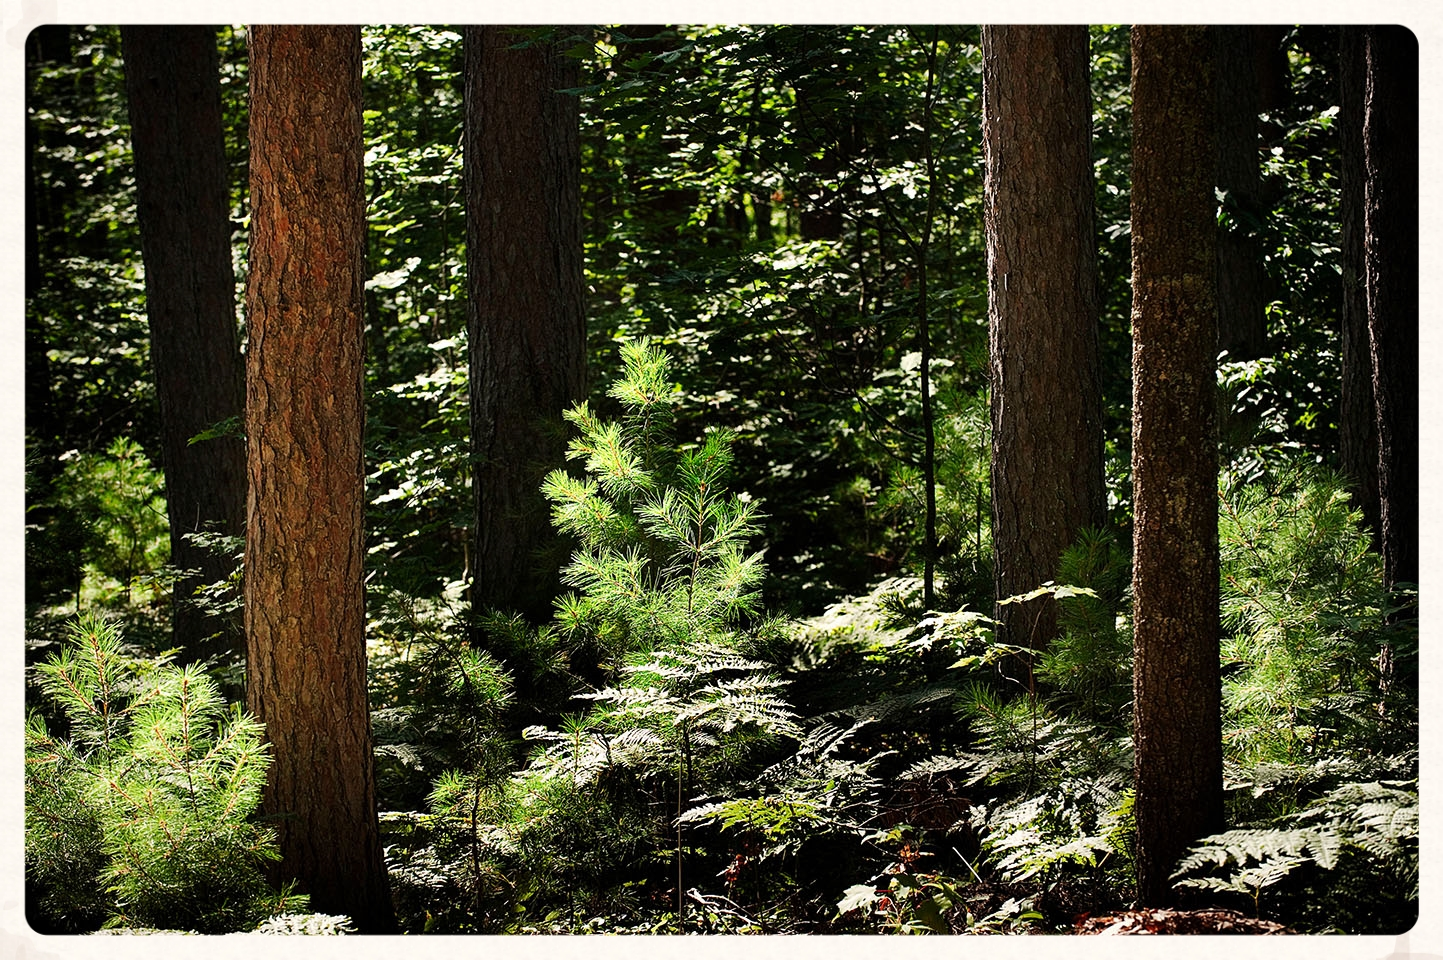 A healthy and diverse forest protects the landscape and creates a rich wild life habitat.